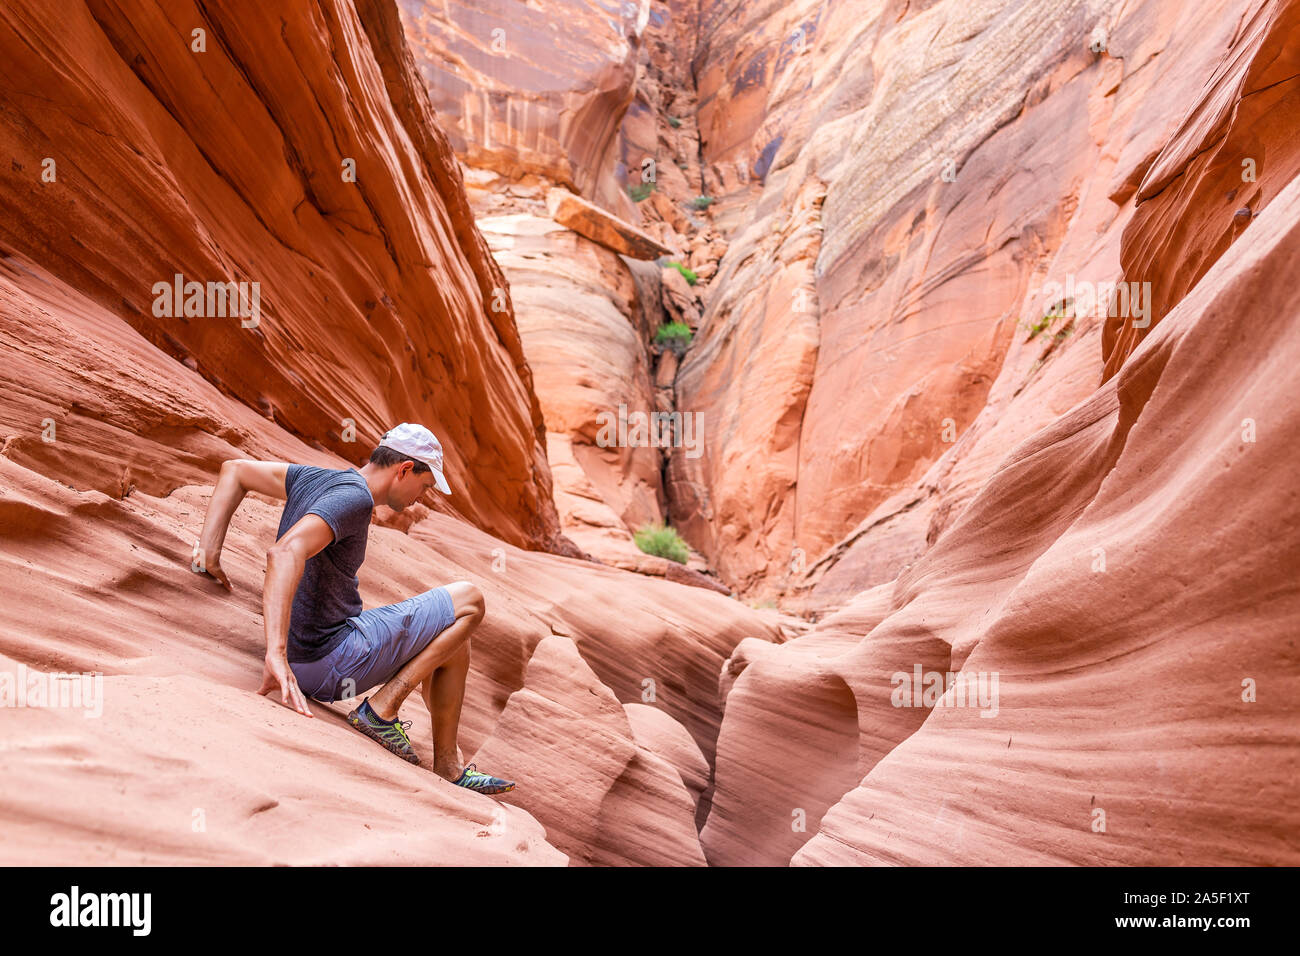 Orange red wave sandstone abstract formations and man climbing rocks at narrow Antelope slot canyon in Arizona on trail from Lake Powell Stock Photo